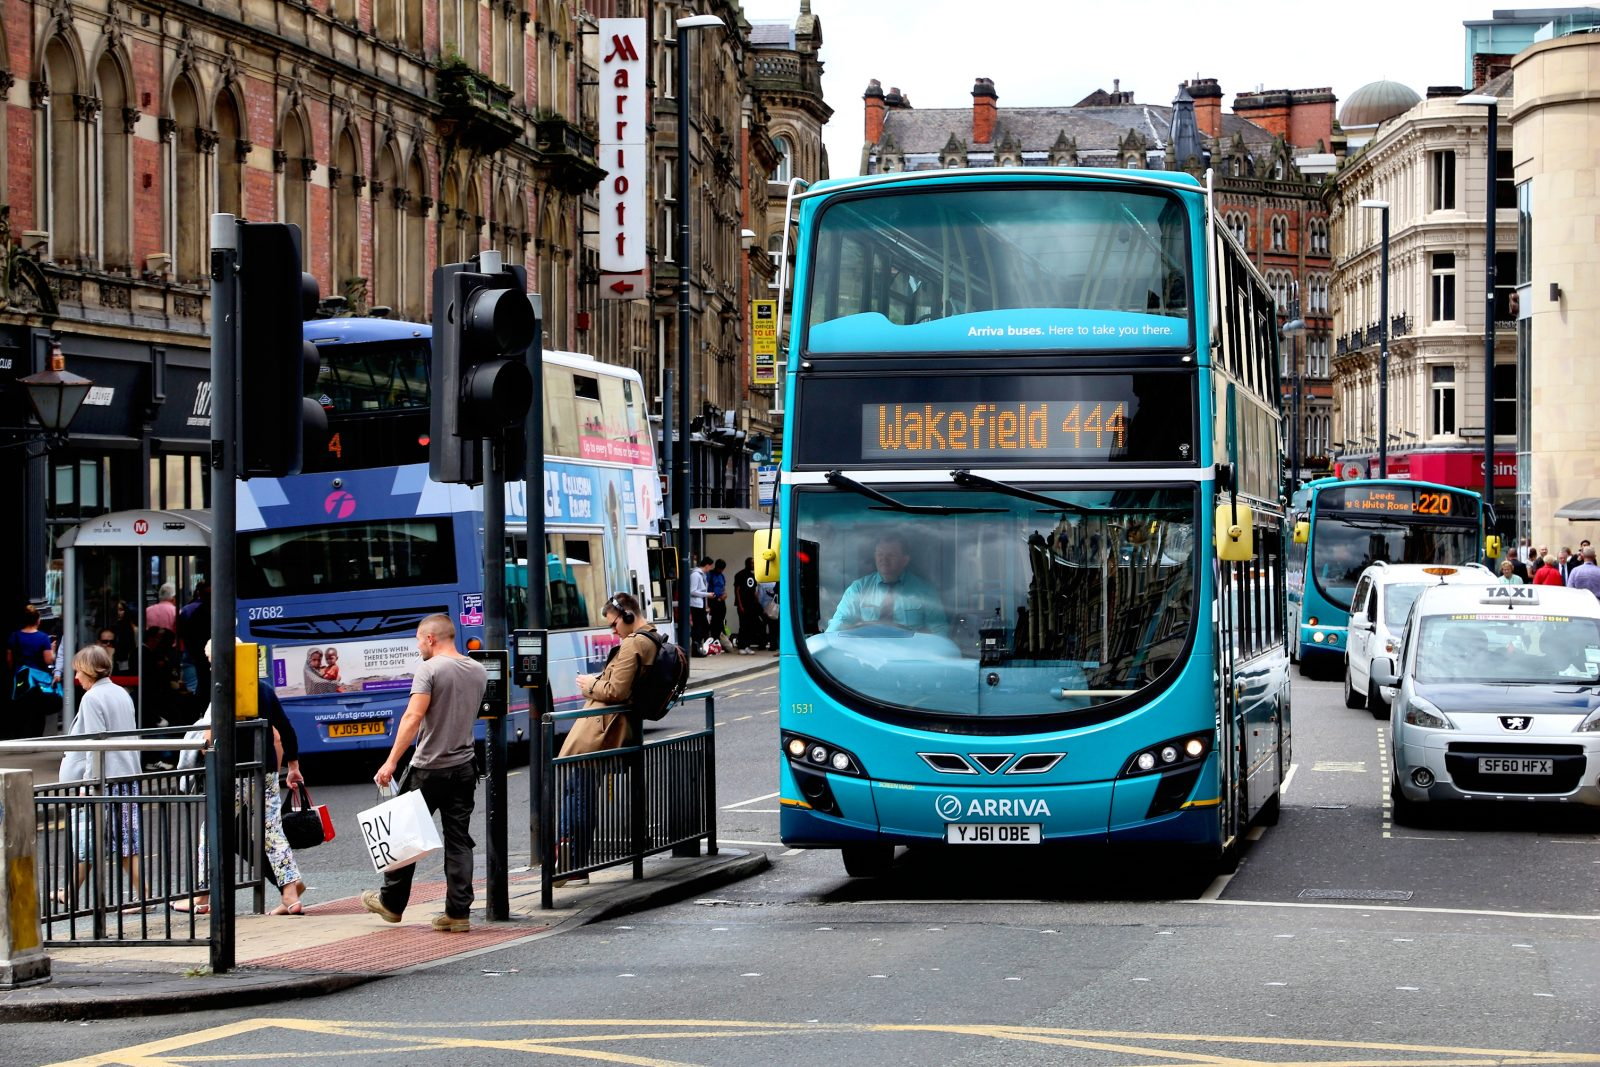 How to Complain About Arriva Buses